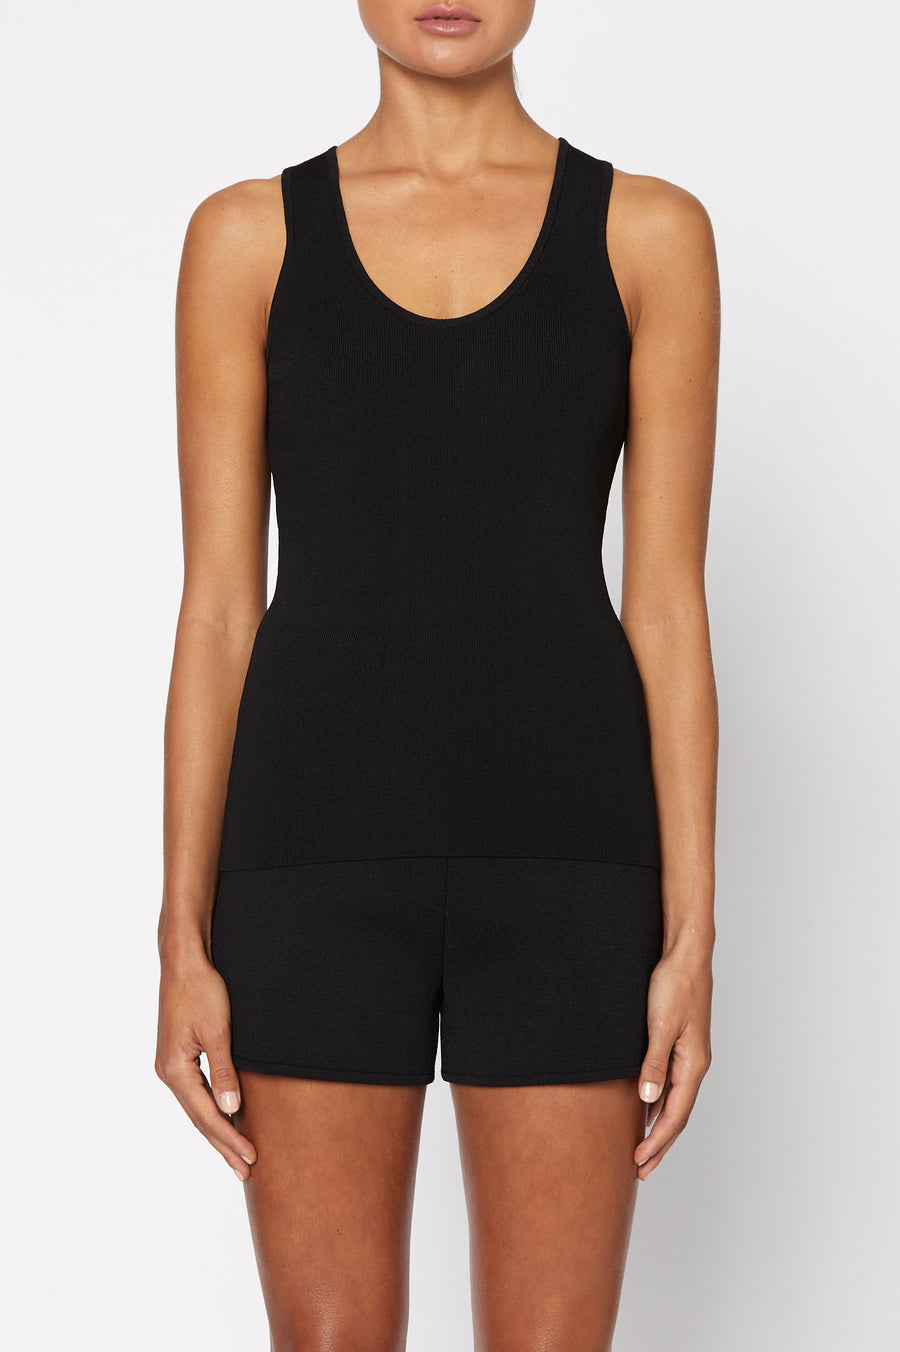 Crepe Knit Singlet, Scoop Neck, Slim Fit. Color Black